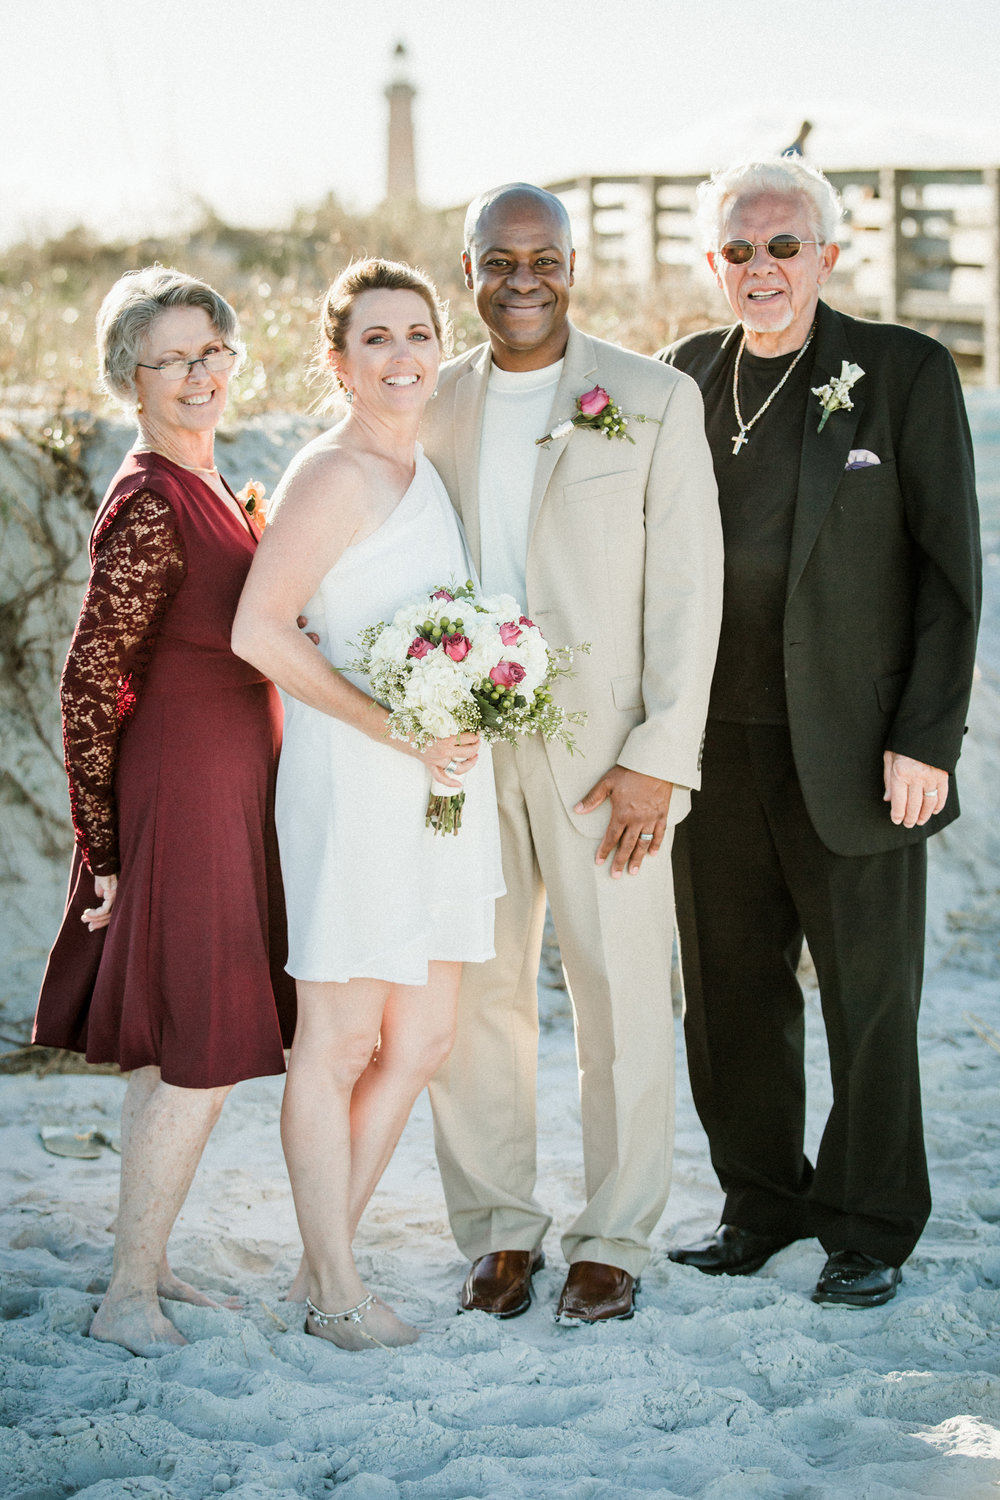 Violets & Seastars- November Ponce Inlet Wedding - Suzette & Dwight 100.jpg